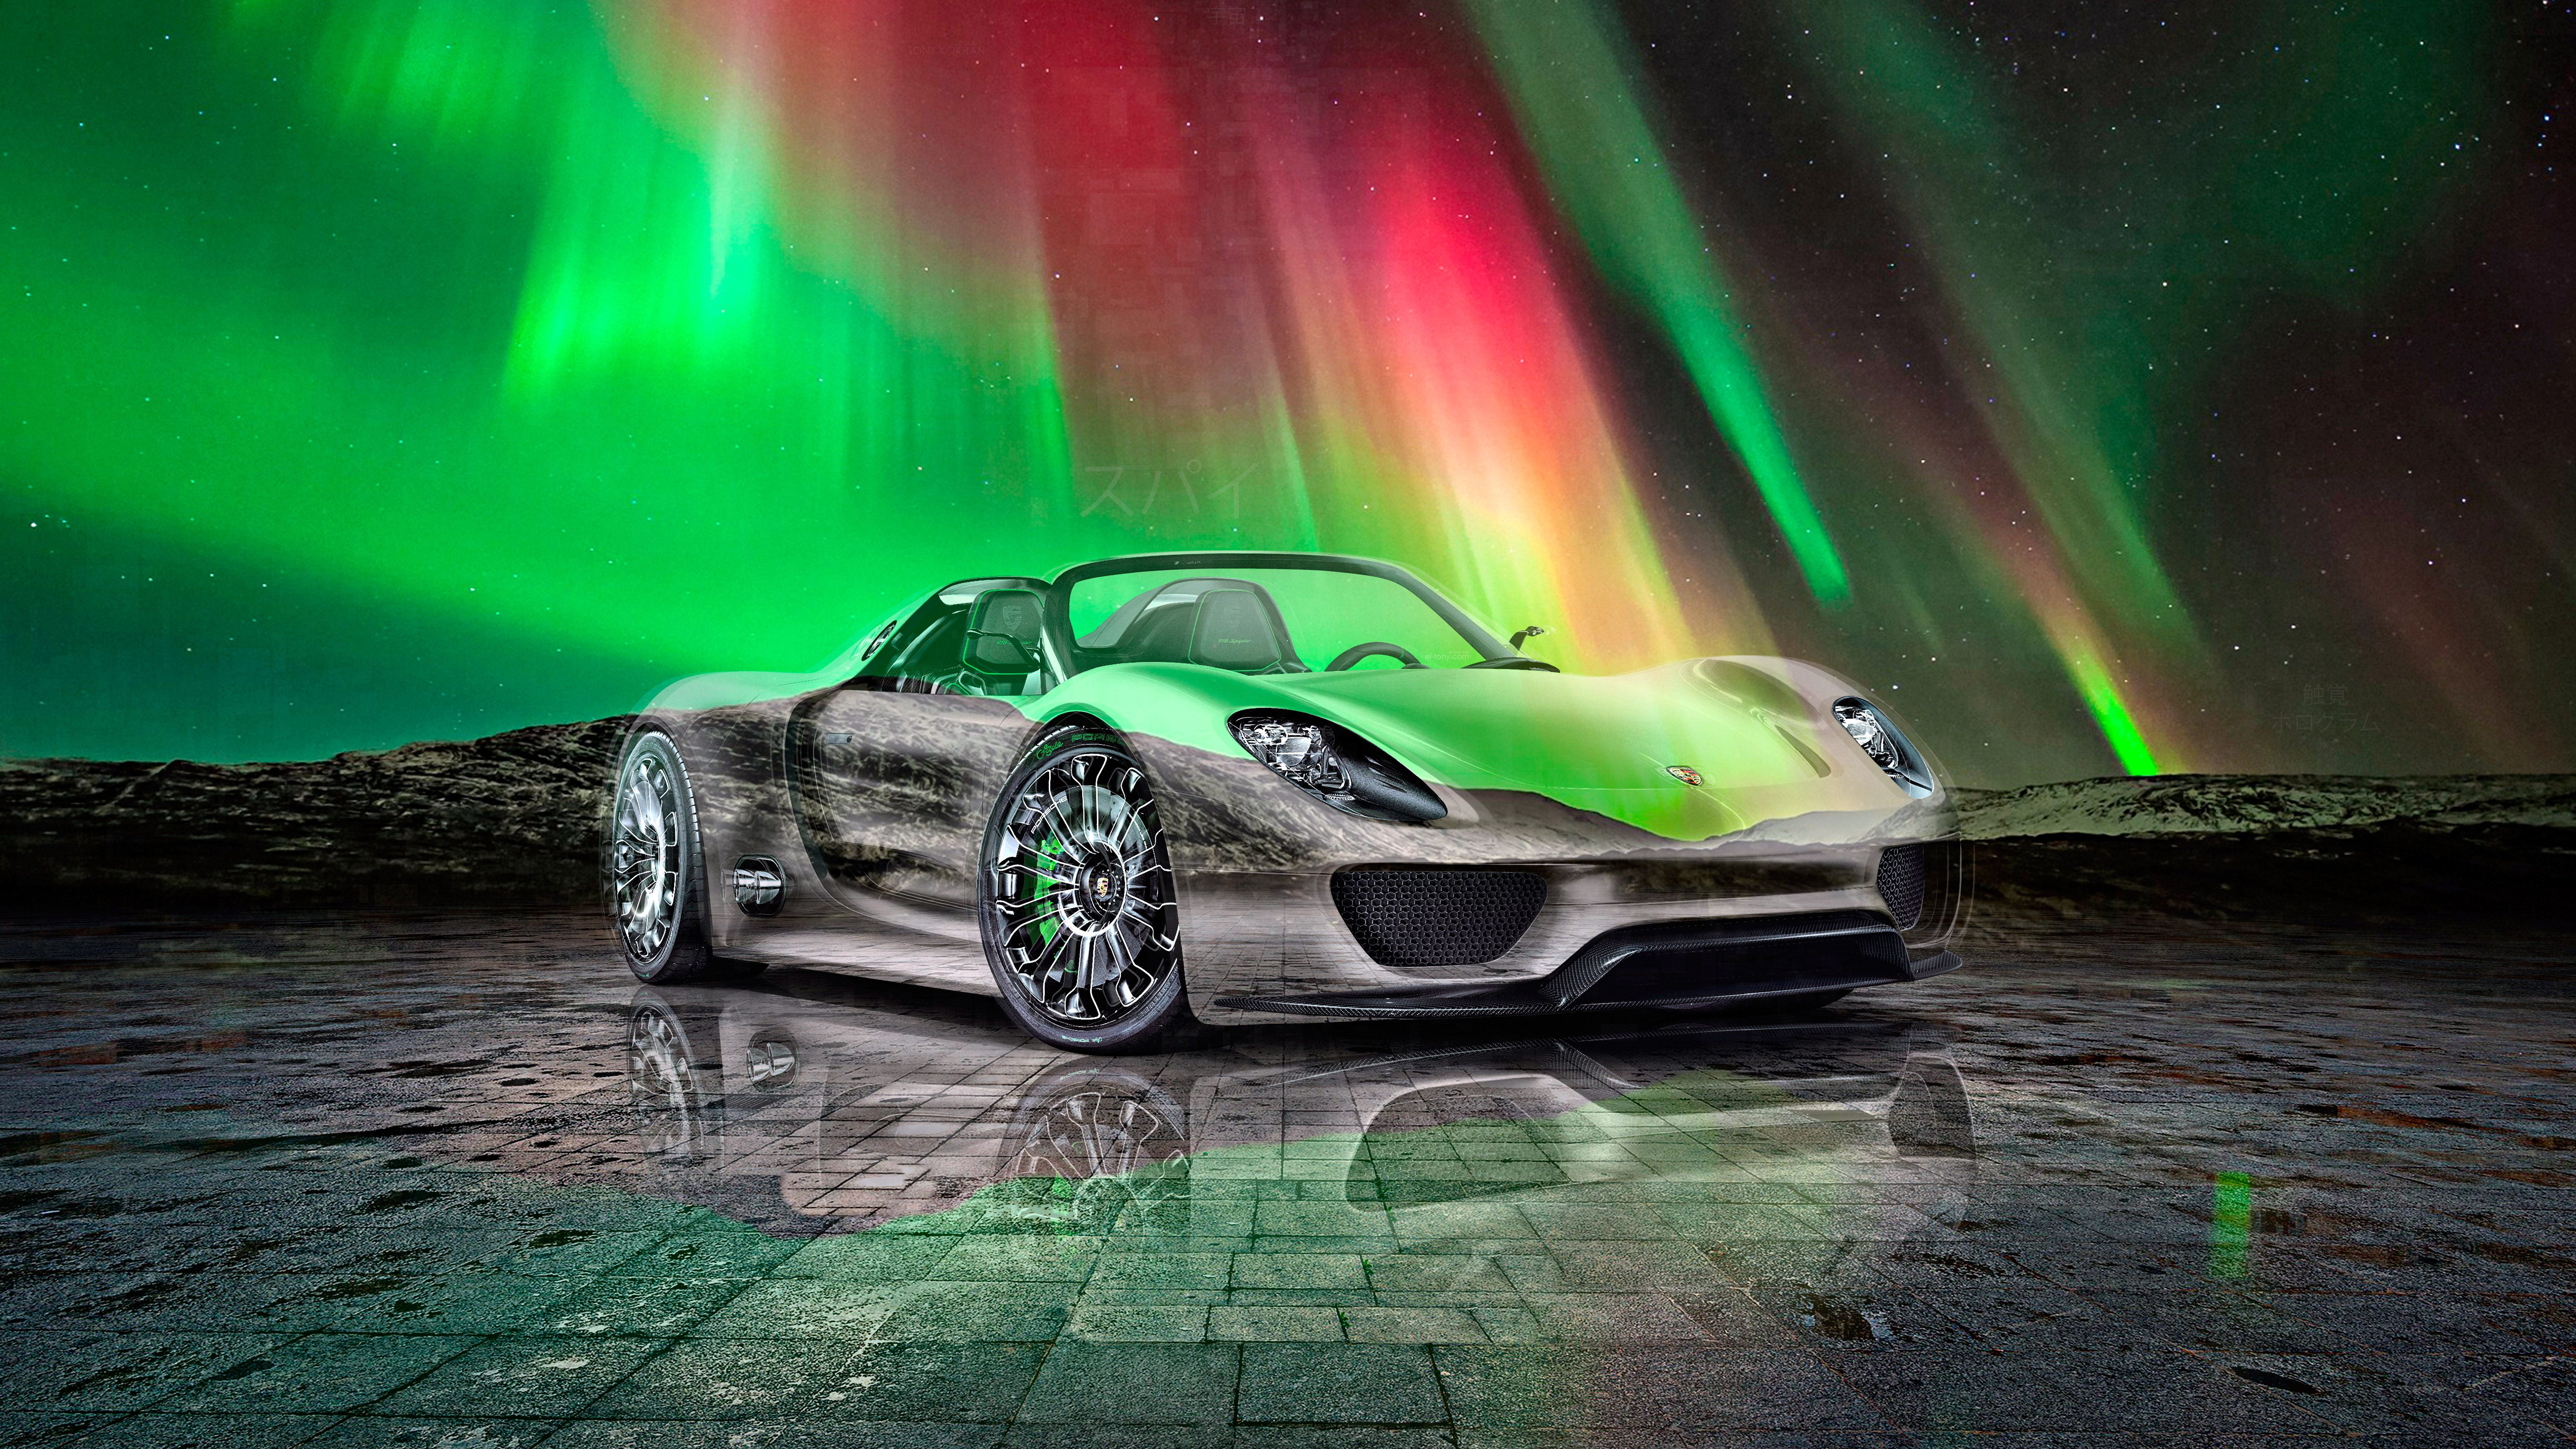 Porsche-918-Spyder-Super-Crystal-Spy-Soul-Northern-Lights-Tactile-Hologram-Art-Car-2021-Multicolors-8K-Wallpapers-design-by-Tony-Kokhan-www.el-tony.com-image